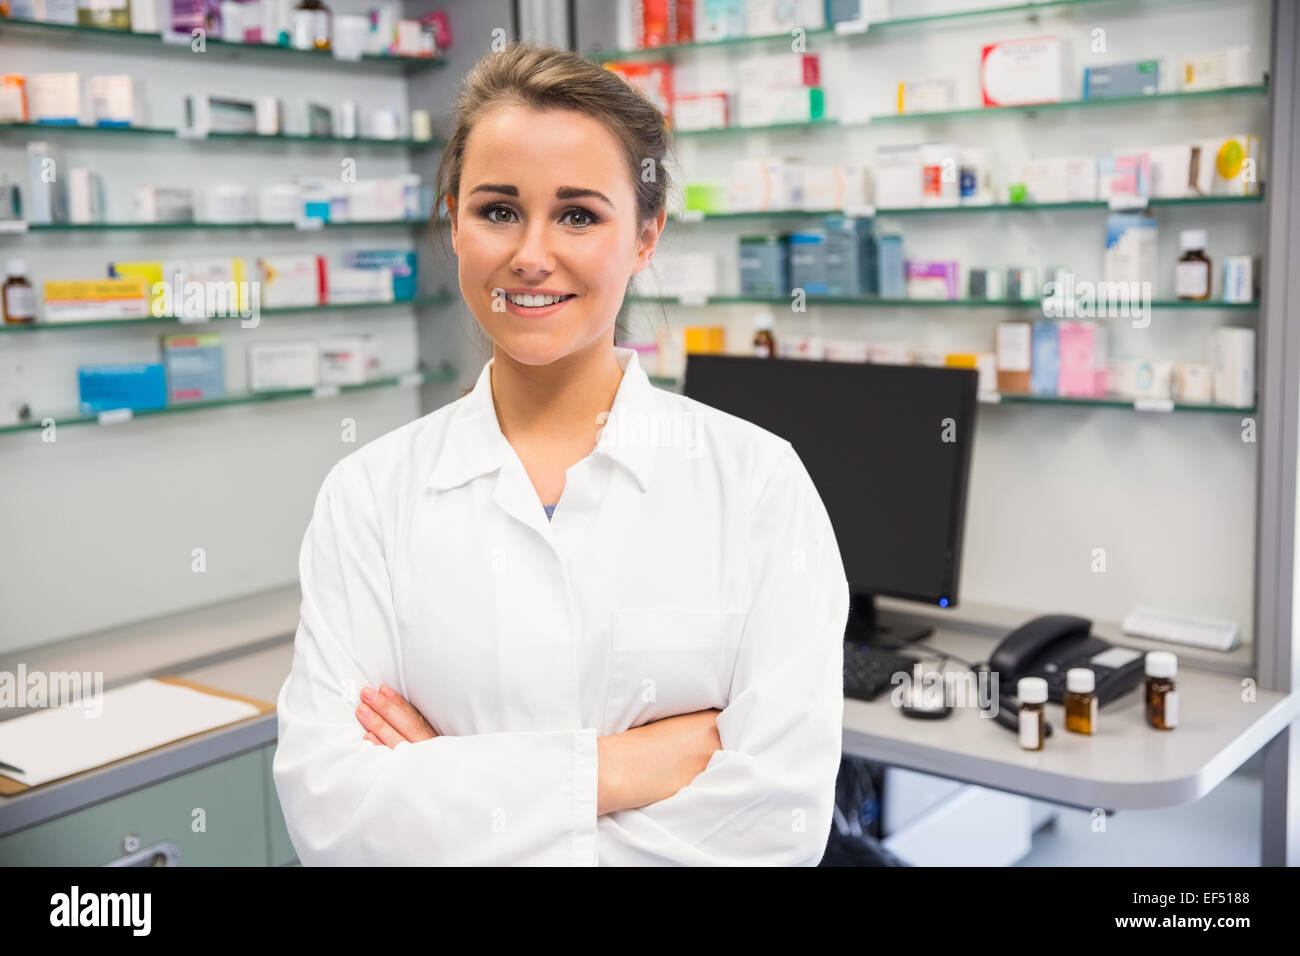 Pharmacien Junior smiling at camera Photo Stock